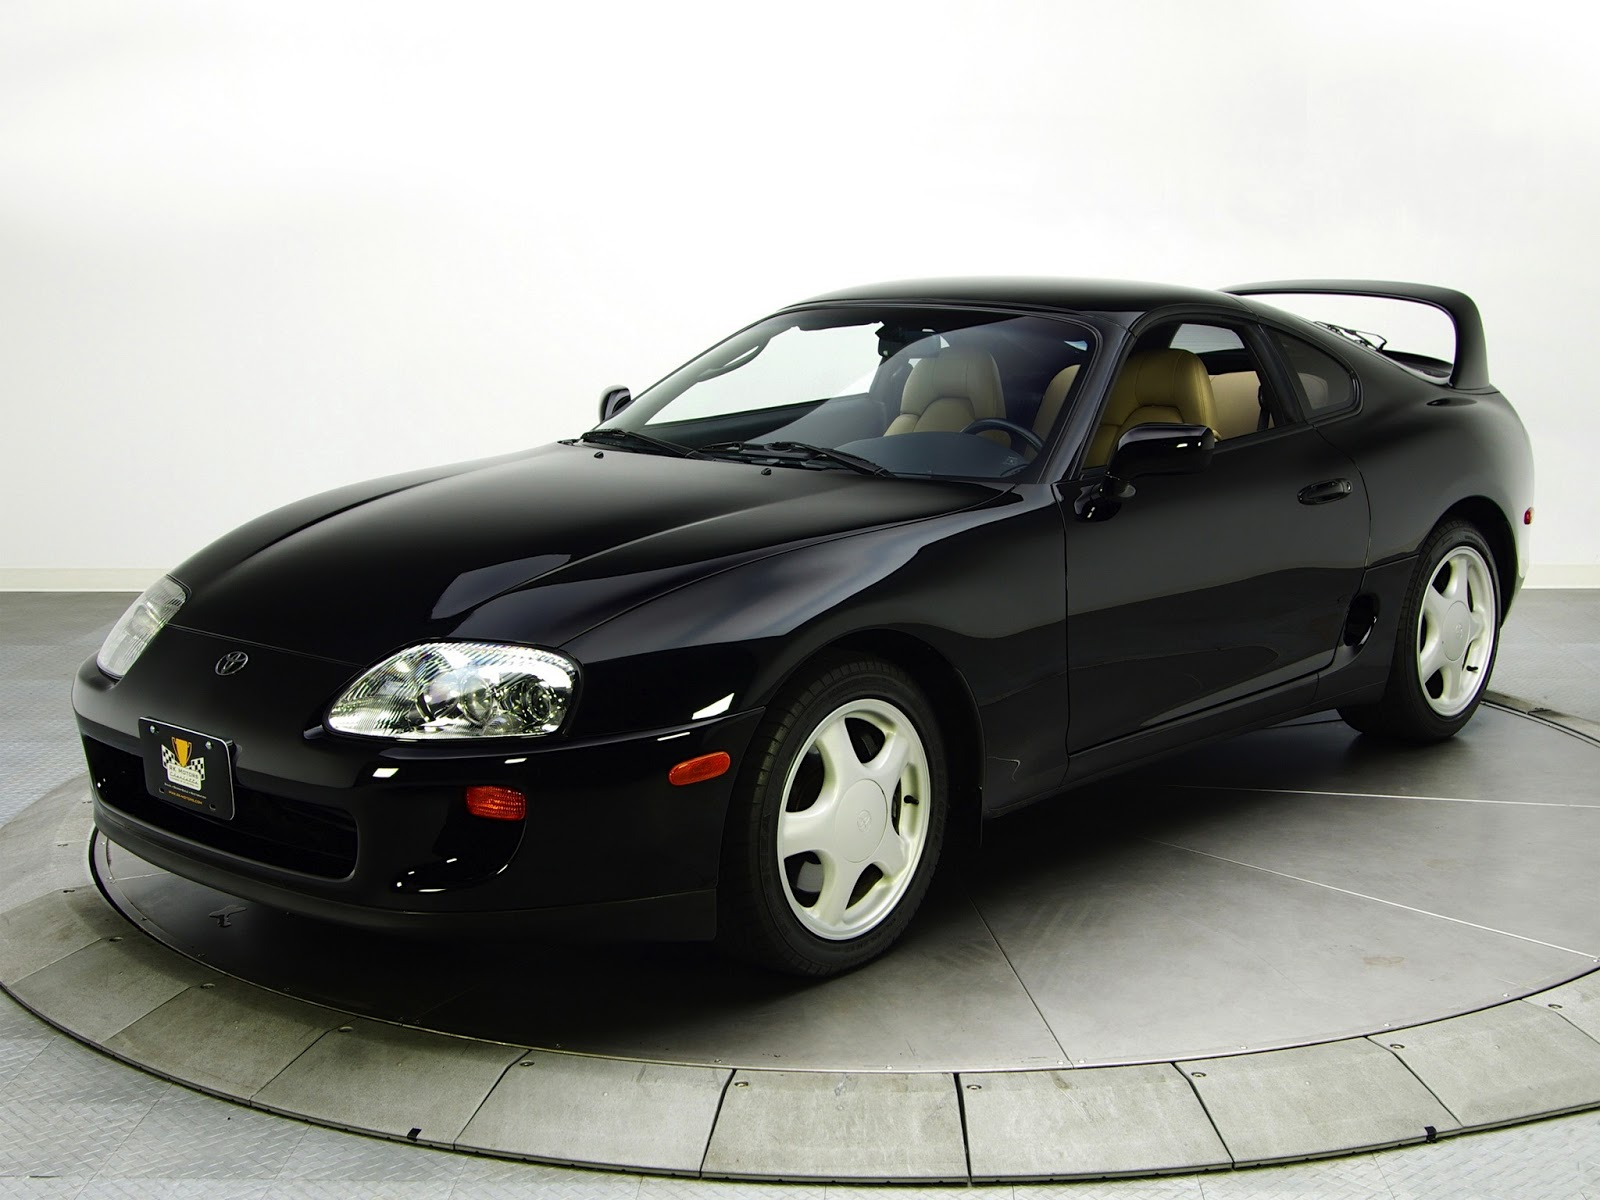 supra sales to canada ceased in 1996 and to the us in 1998 production continued in japan until august 2002 ceasing owing to restrictive emission  [ 1600 x 1200 Pixel ]